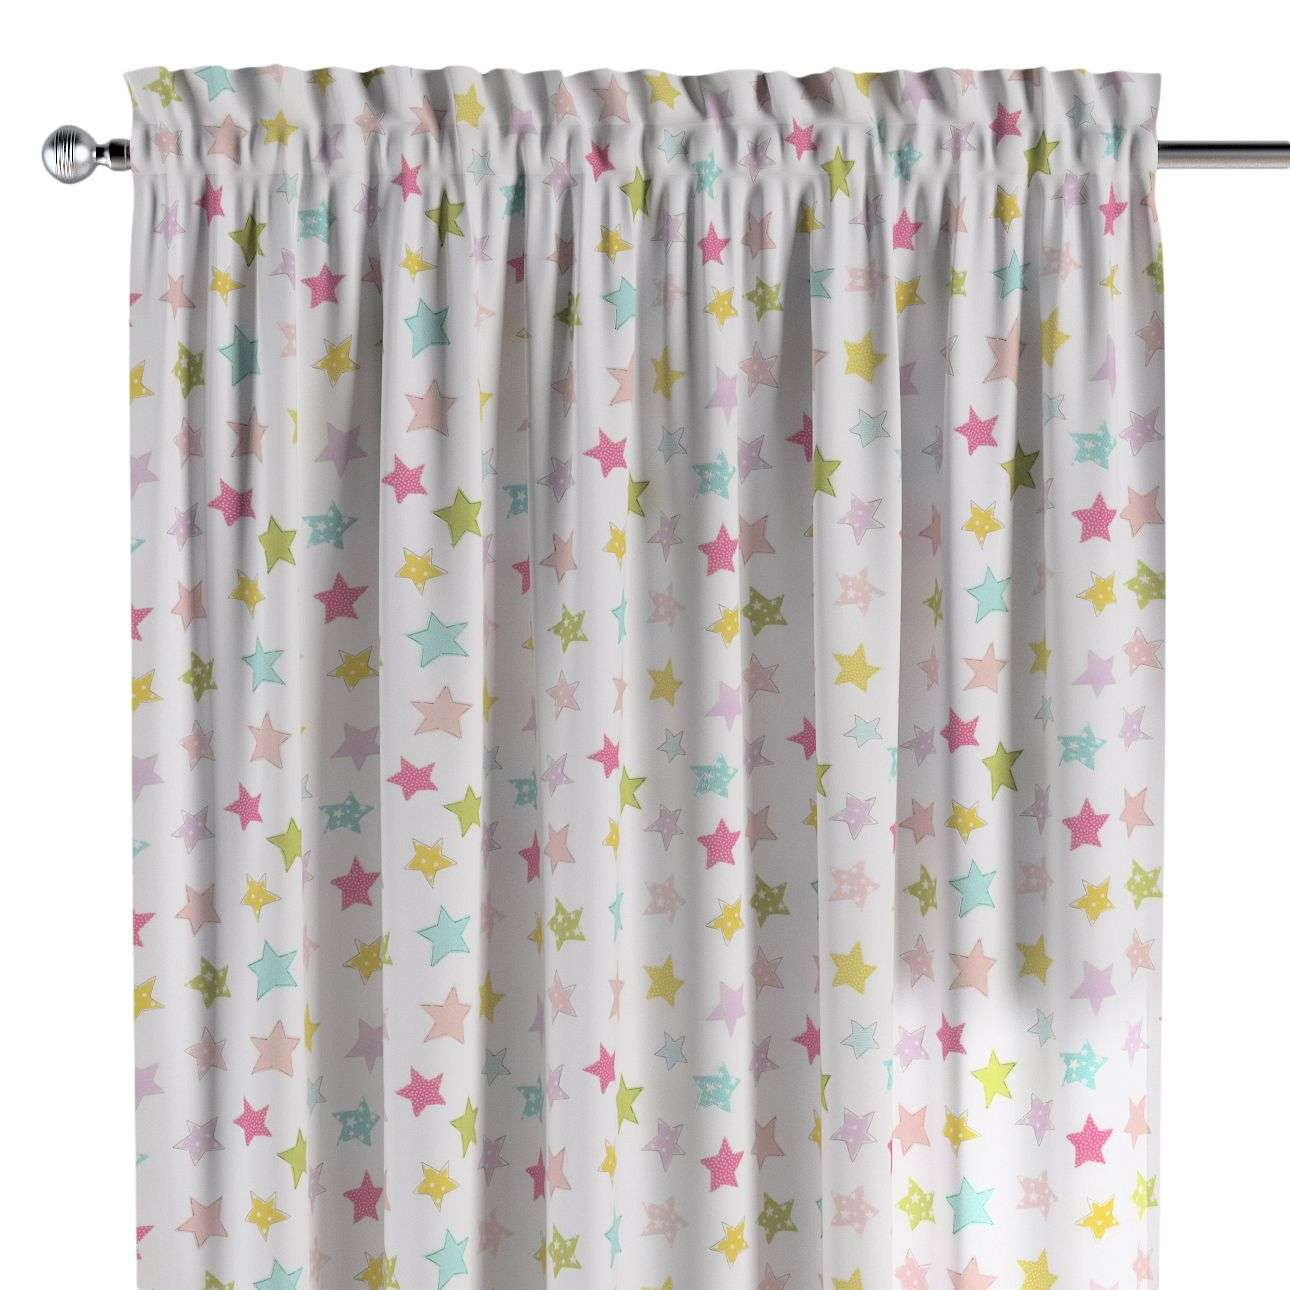 Slot and frill curtains in collection Little World, fabric: 141-52